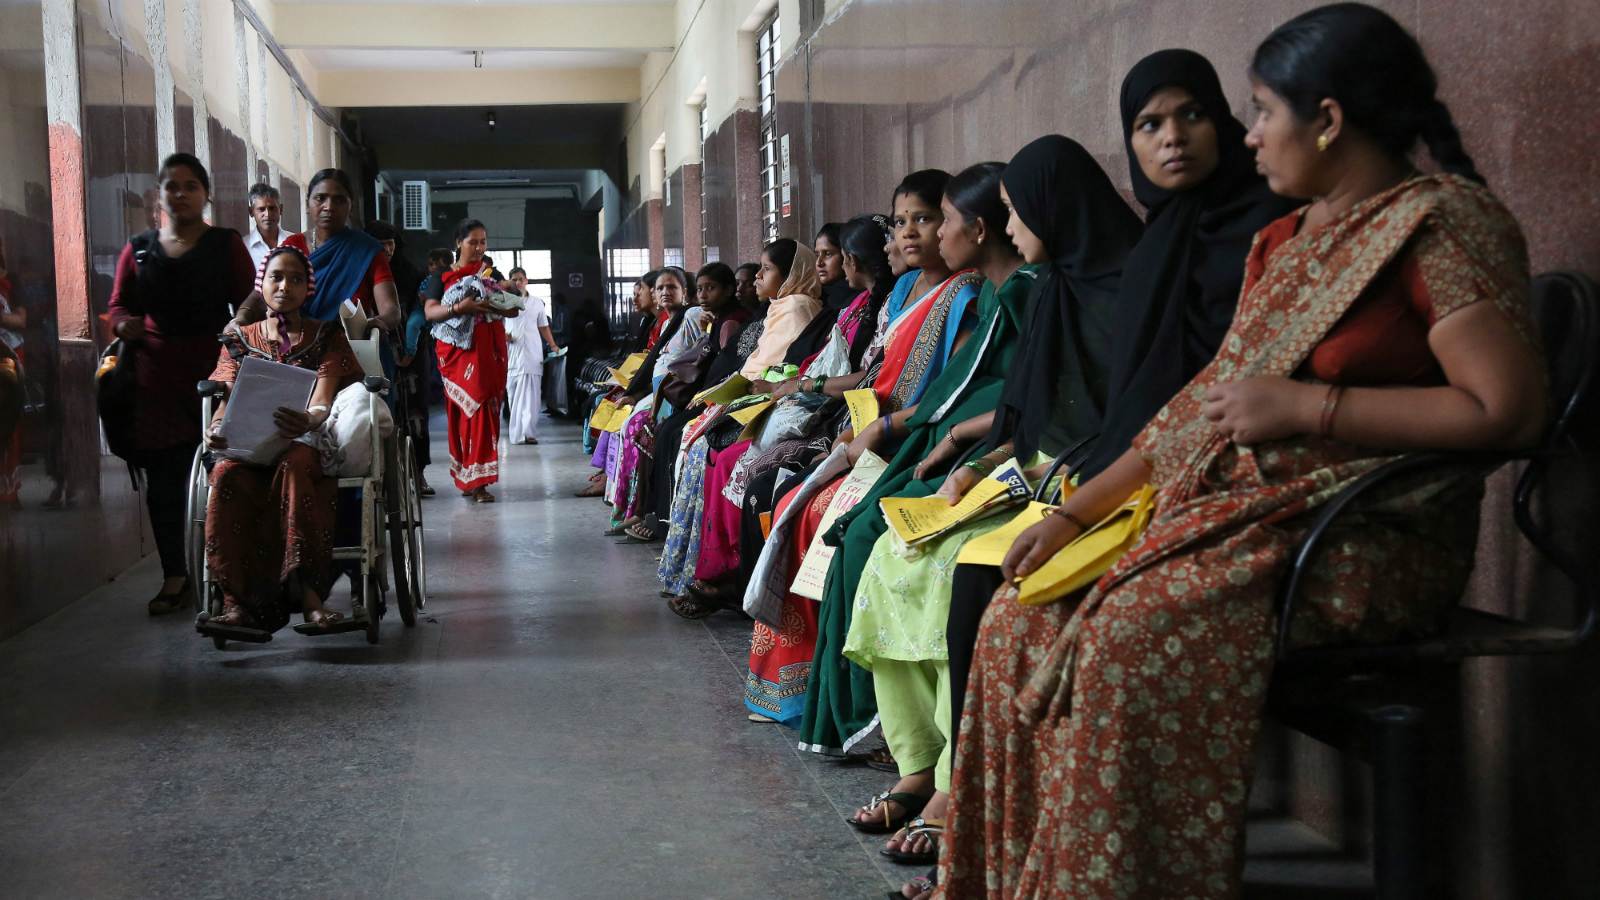 Pregnant Indian women hold their medical cards and wait for their turn to be examined at a government hospital on World Population Day in Hyderabad, India, Friday, July 11, 2014. India is the second most populous country with 1.2 billion people next to China, with its capital being the second most populated city in the world. (AP Photo/Mahesh Kumar A.)